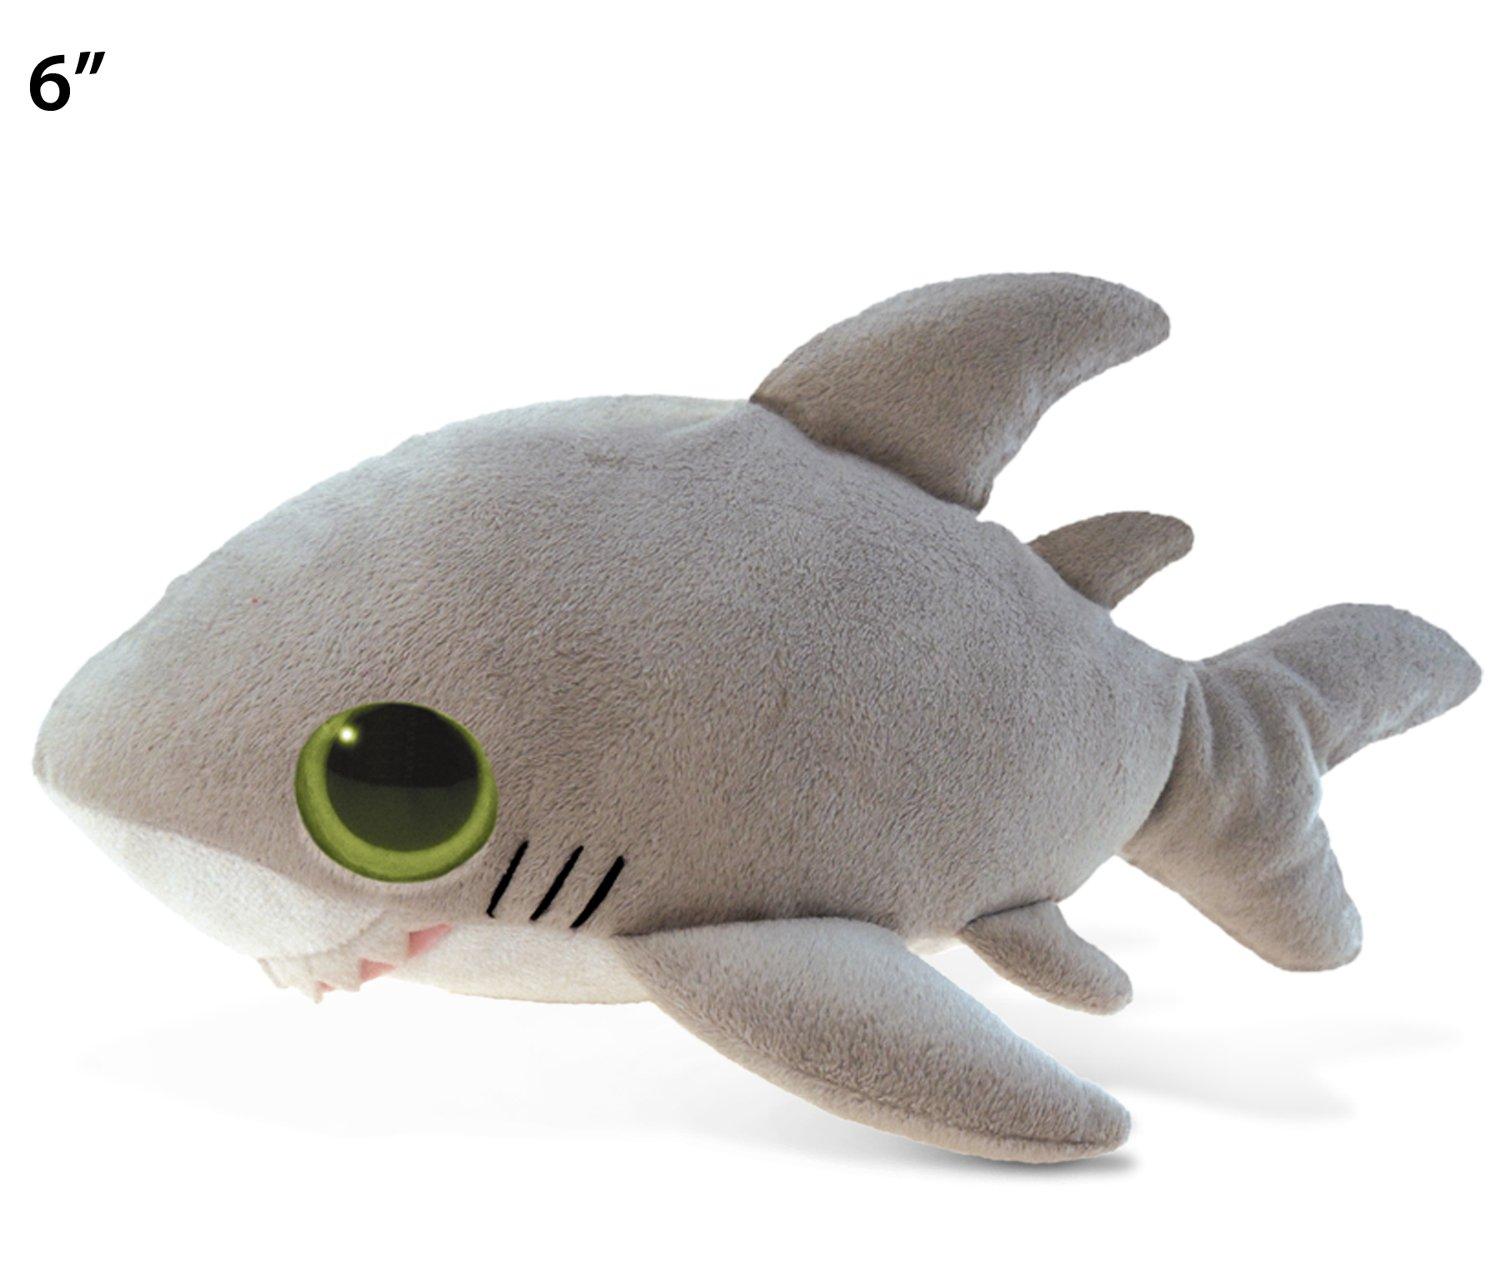 Puzzled Gray Shark Plush, 6 Inch Collectible Decorative Big Eyes Stuffed Animal Soft Take A Long Plushie Pillow Squishes Washable Cushy Mini Doll Ocean Sea Life Themed Kids Toddlers Toy & Games